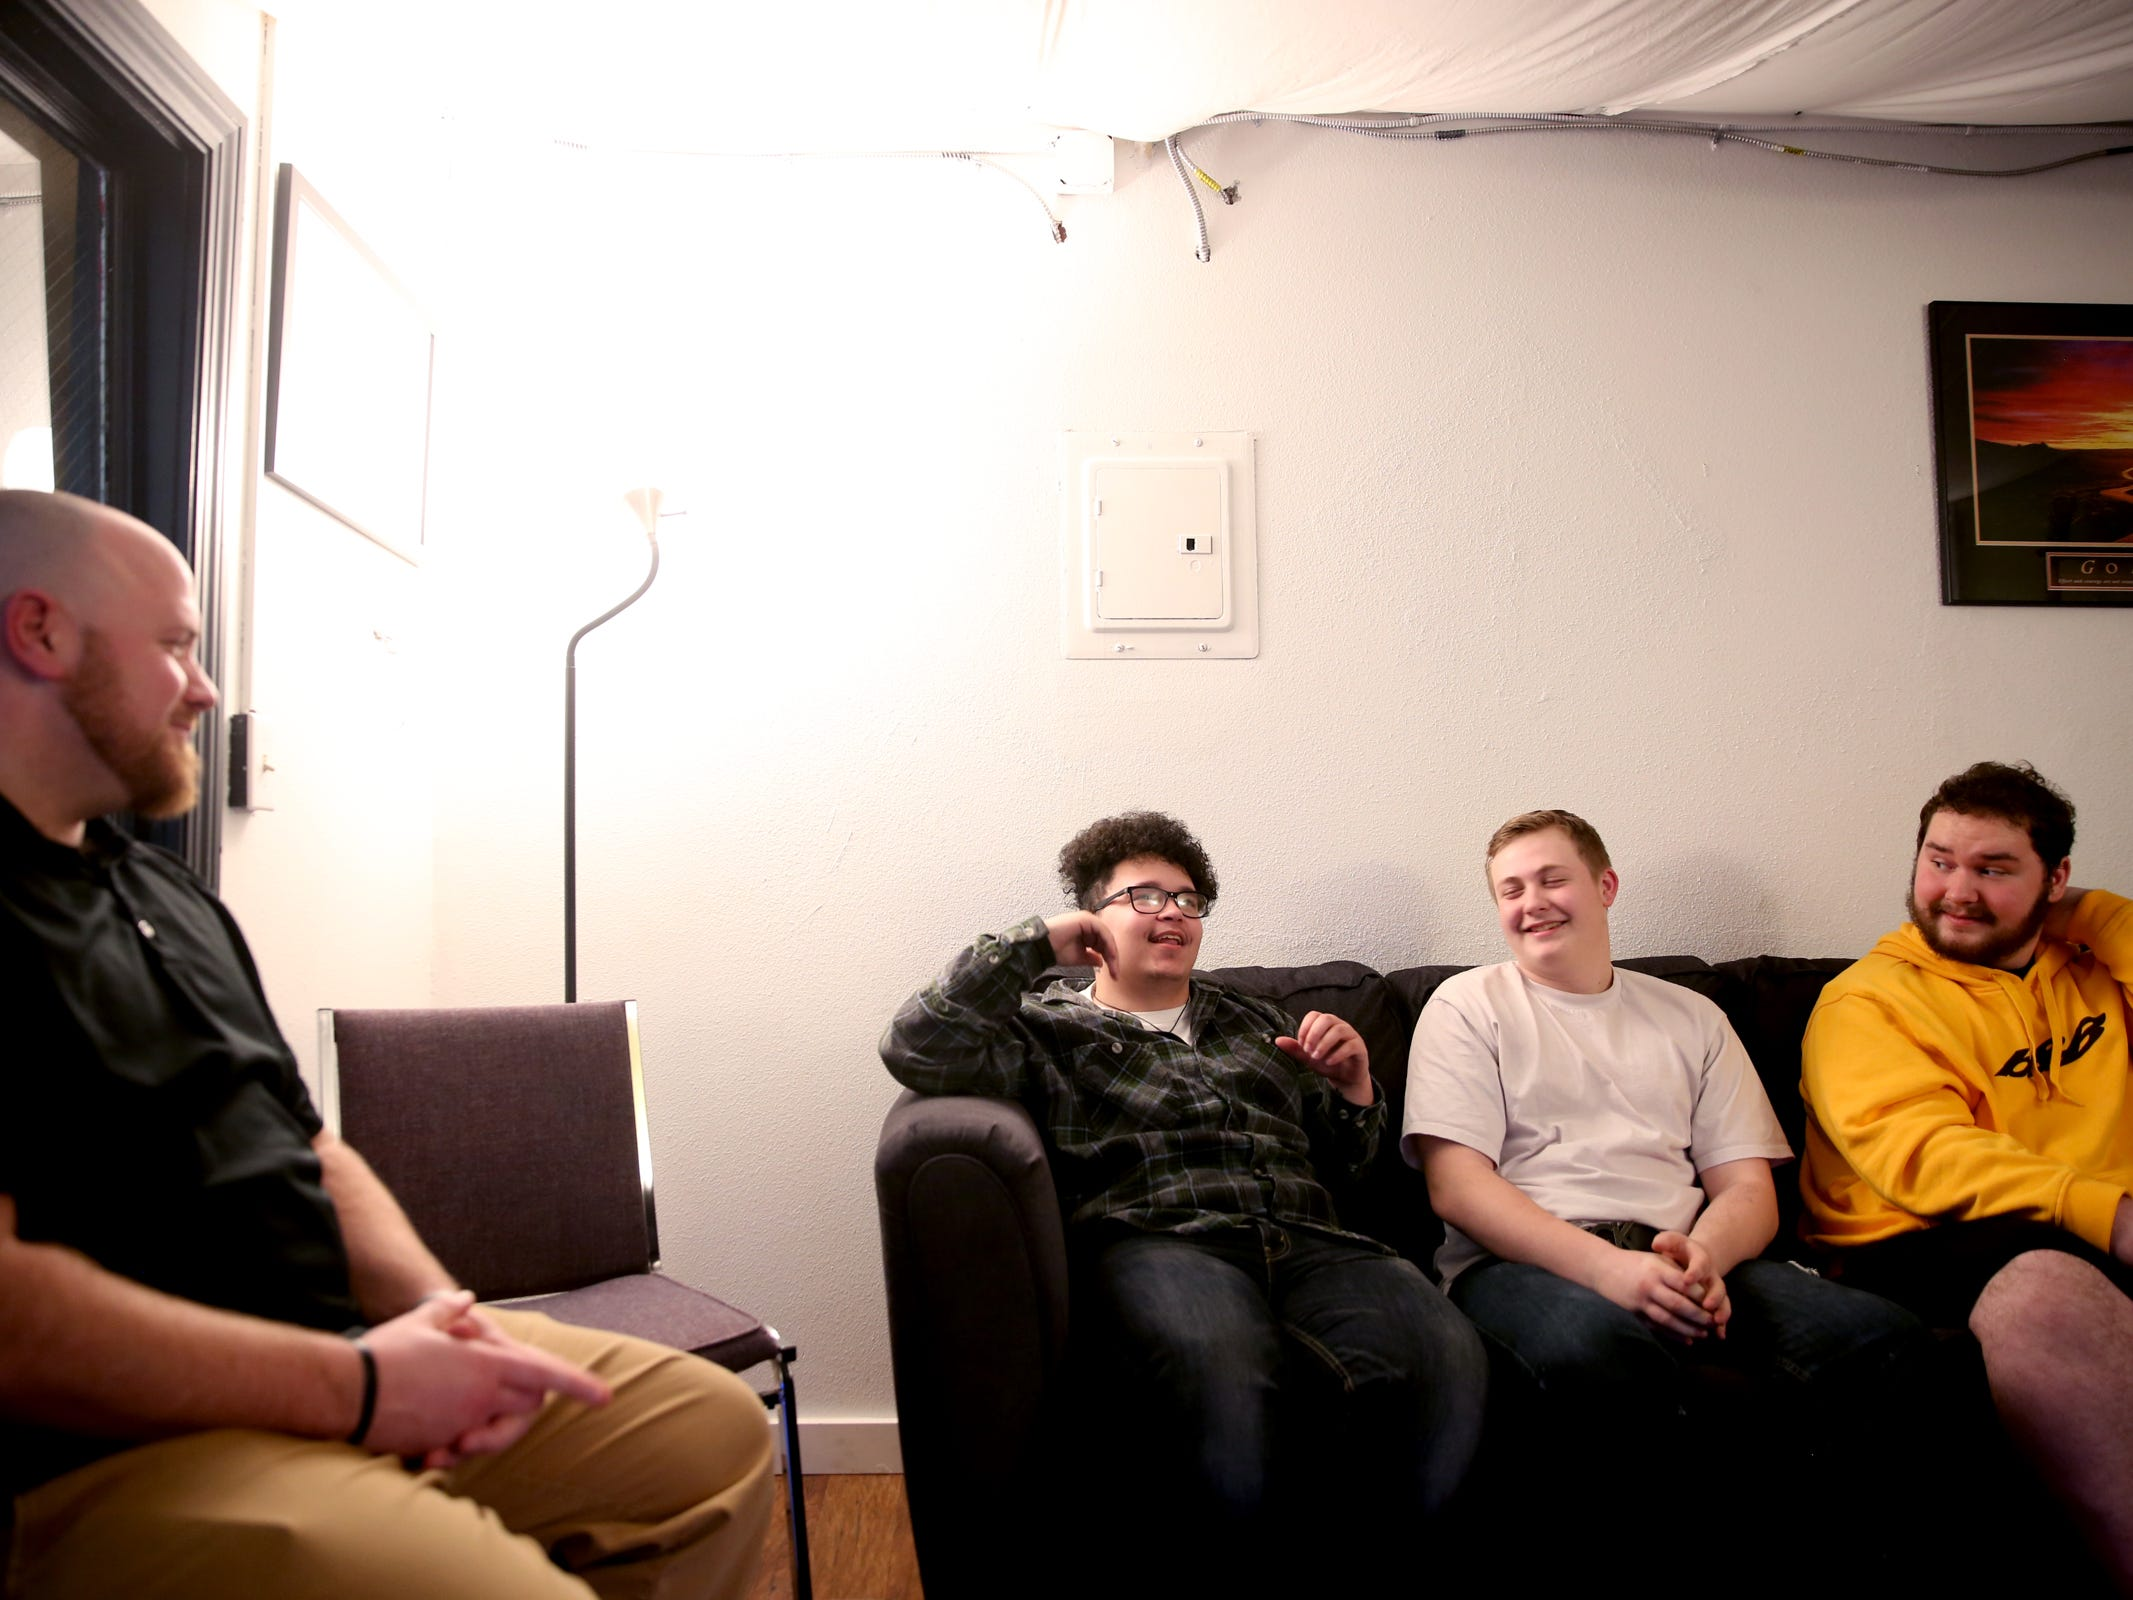 Sonny Saltalamachia, from left, the clinical supervisor of adolescent services with Bridgeway Recovery Services, talks with Caleb McDonald, 18, Andrew McMains, 17, and David Bond, 18, all of Salem, at IKE Box in Salem on Thursday, Jan. 31, 2019. Songs the teens wrote placed in the Teens Make Music national competition, organized by MusiCares, and they will travel to this year's GRAMMY Awards in Los Angeles.